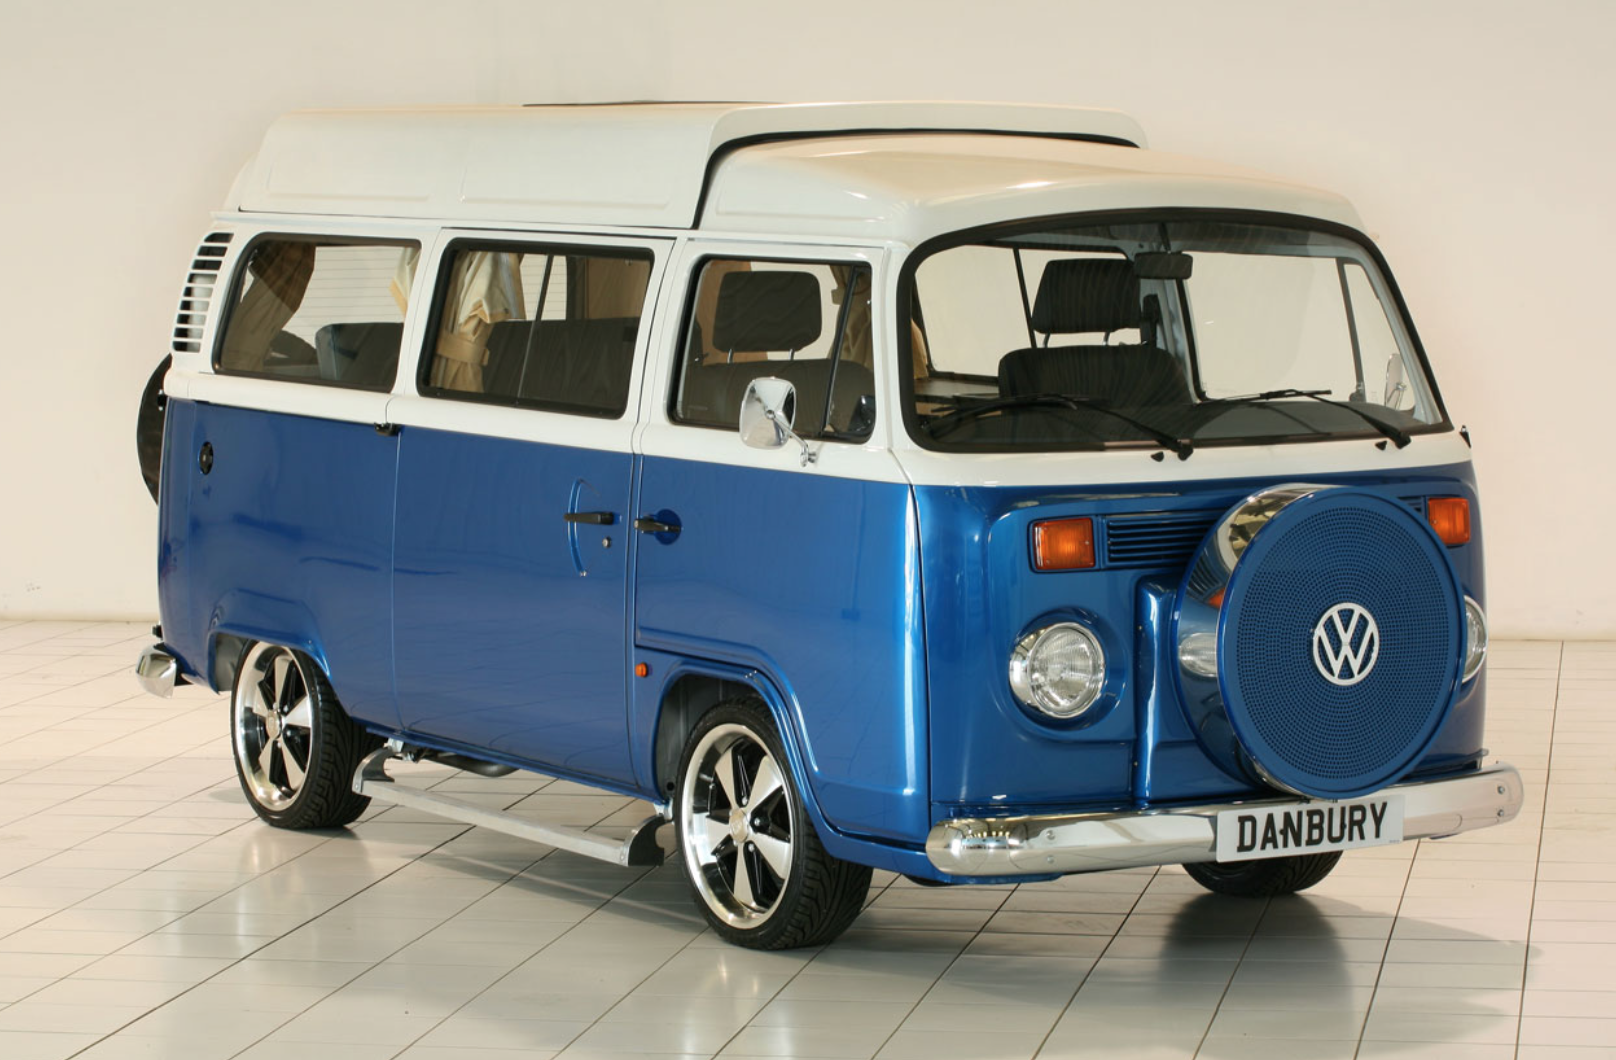 small campers - Volkswagen Bus Camper